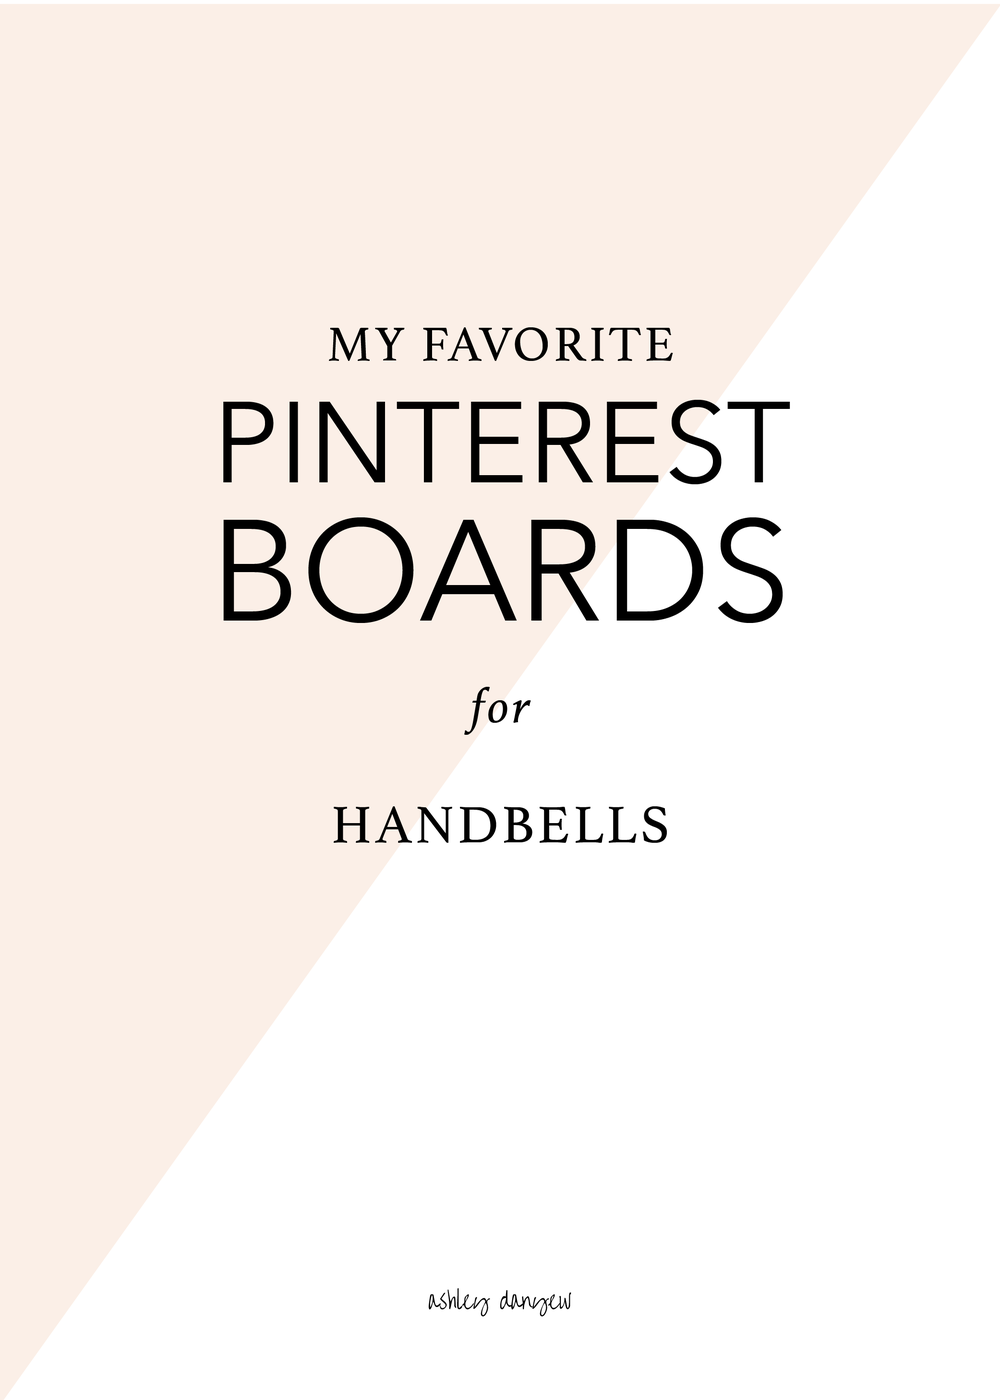 My-Favorite-Pinterest-Boards-for-Handbells-01.png